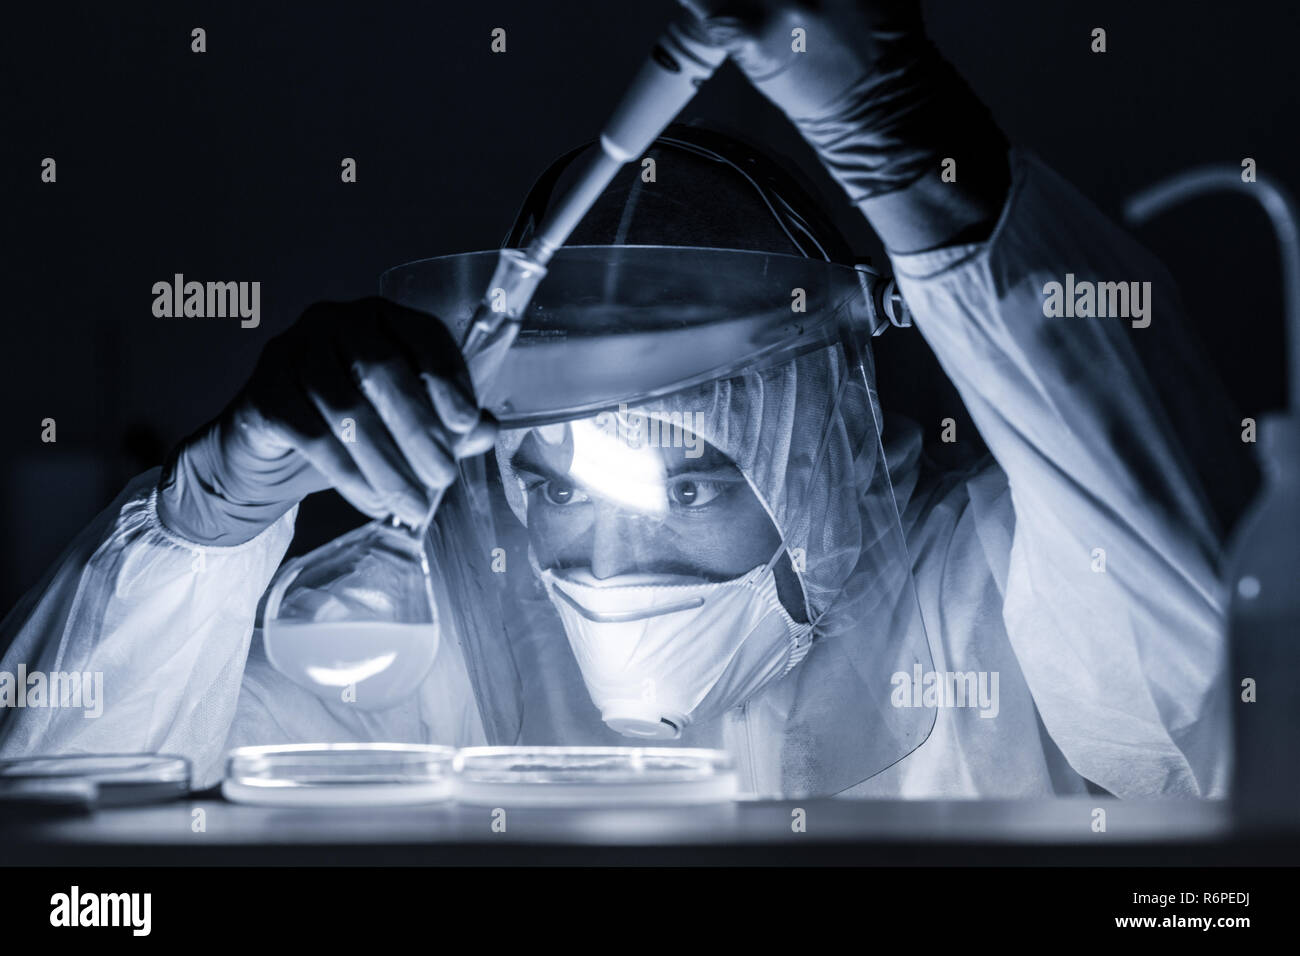 Life scientist researching in bio hazard laboratory. High degree of protection work. Stock Photo